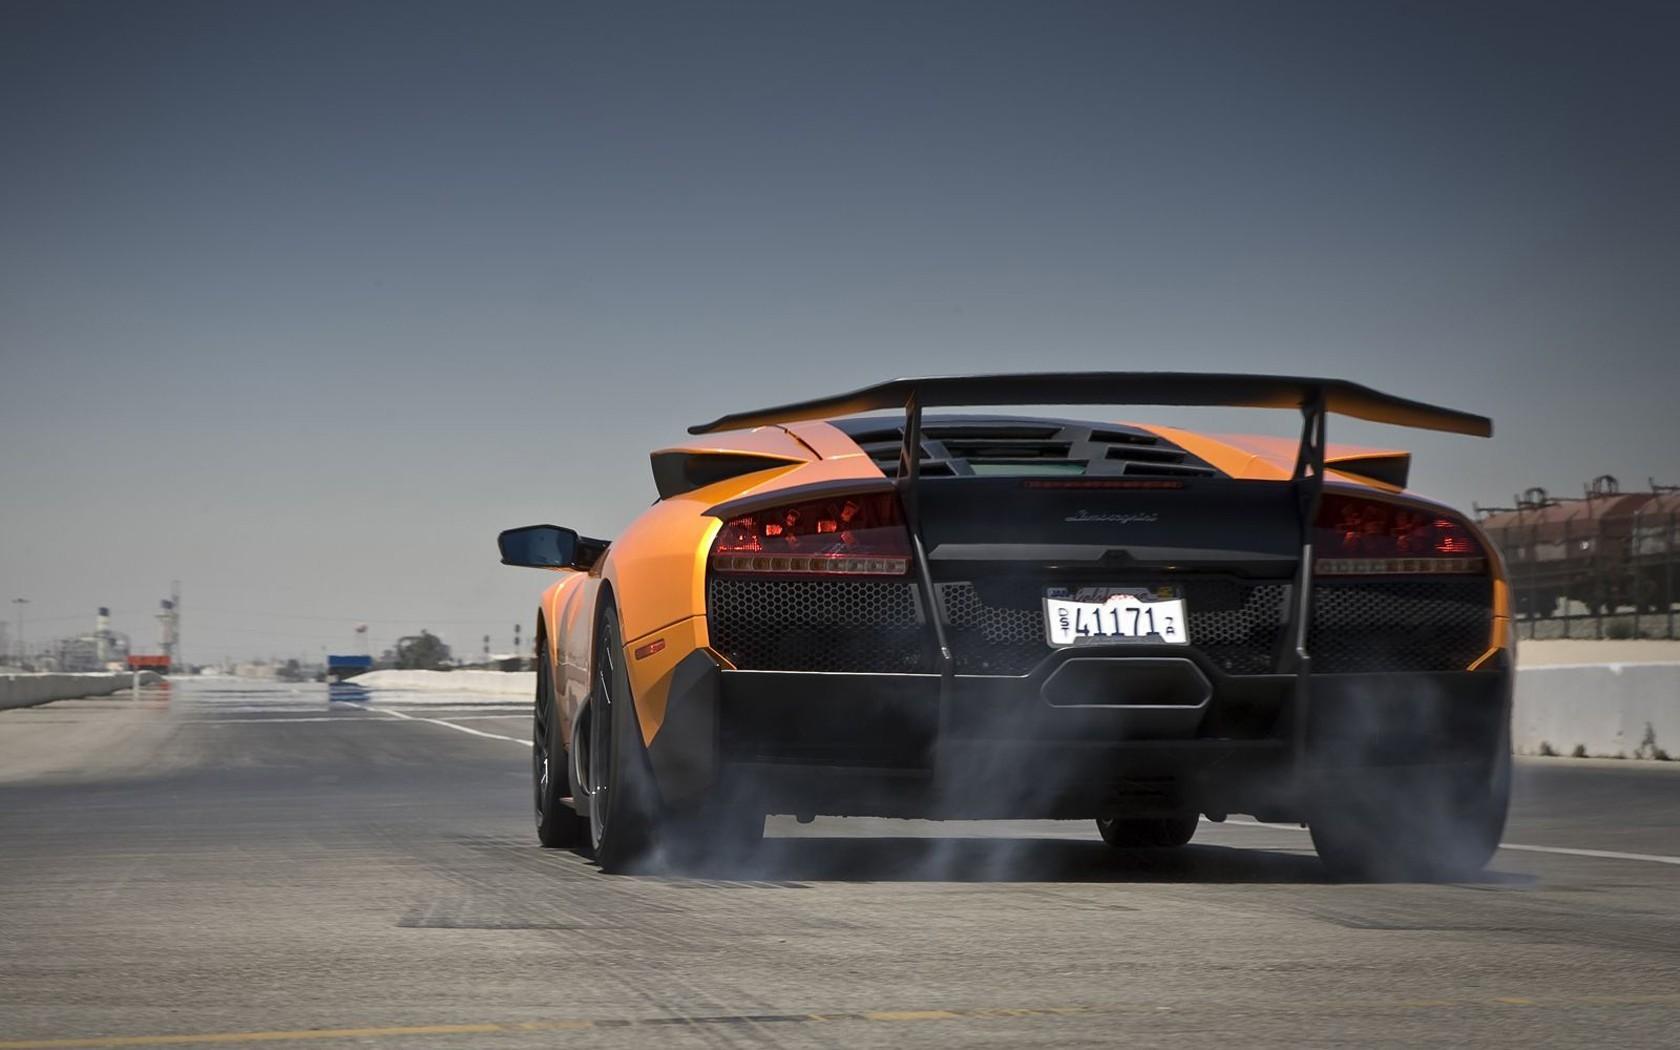 cars Lamborghini Italian vehicles HD Wallpaper